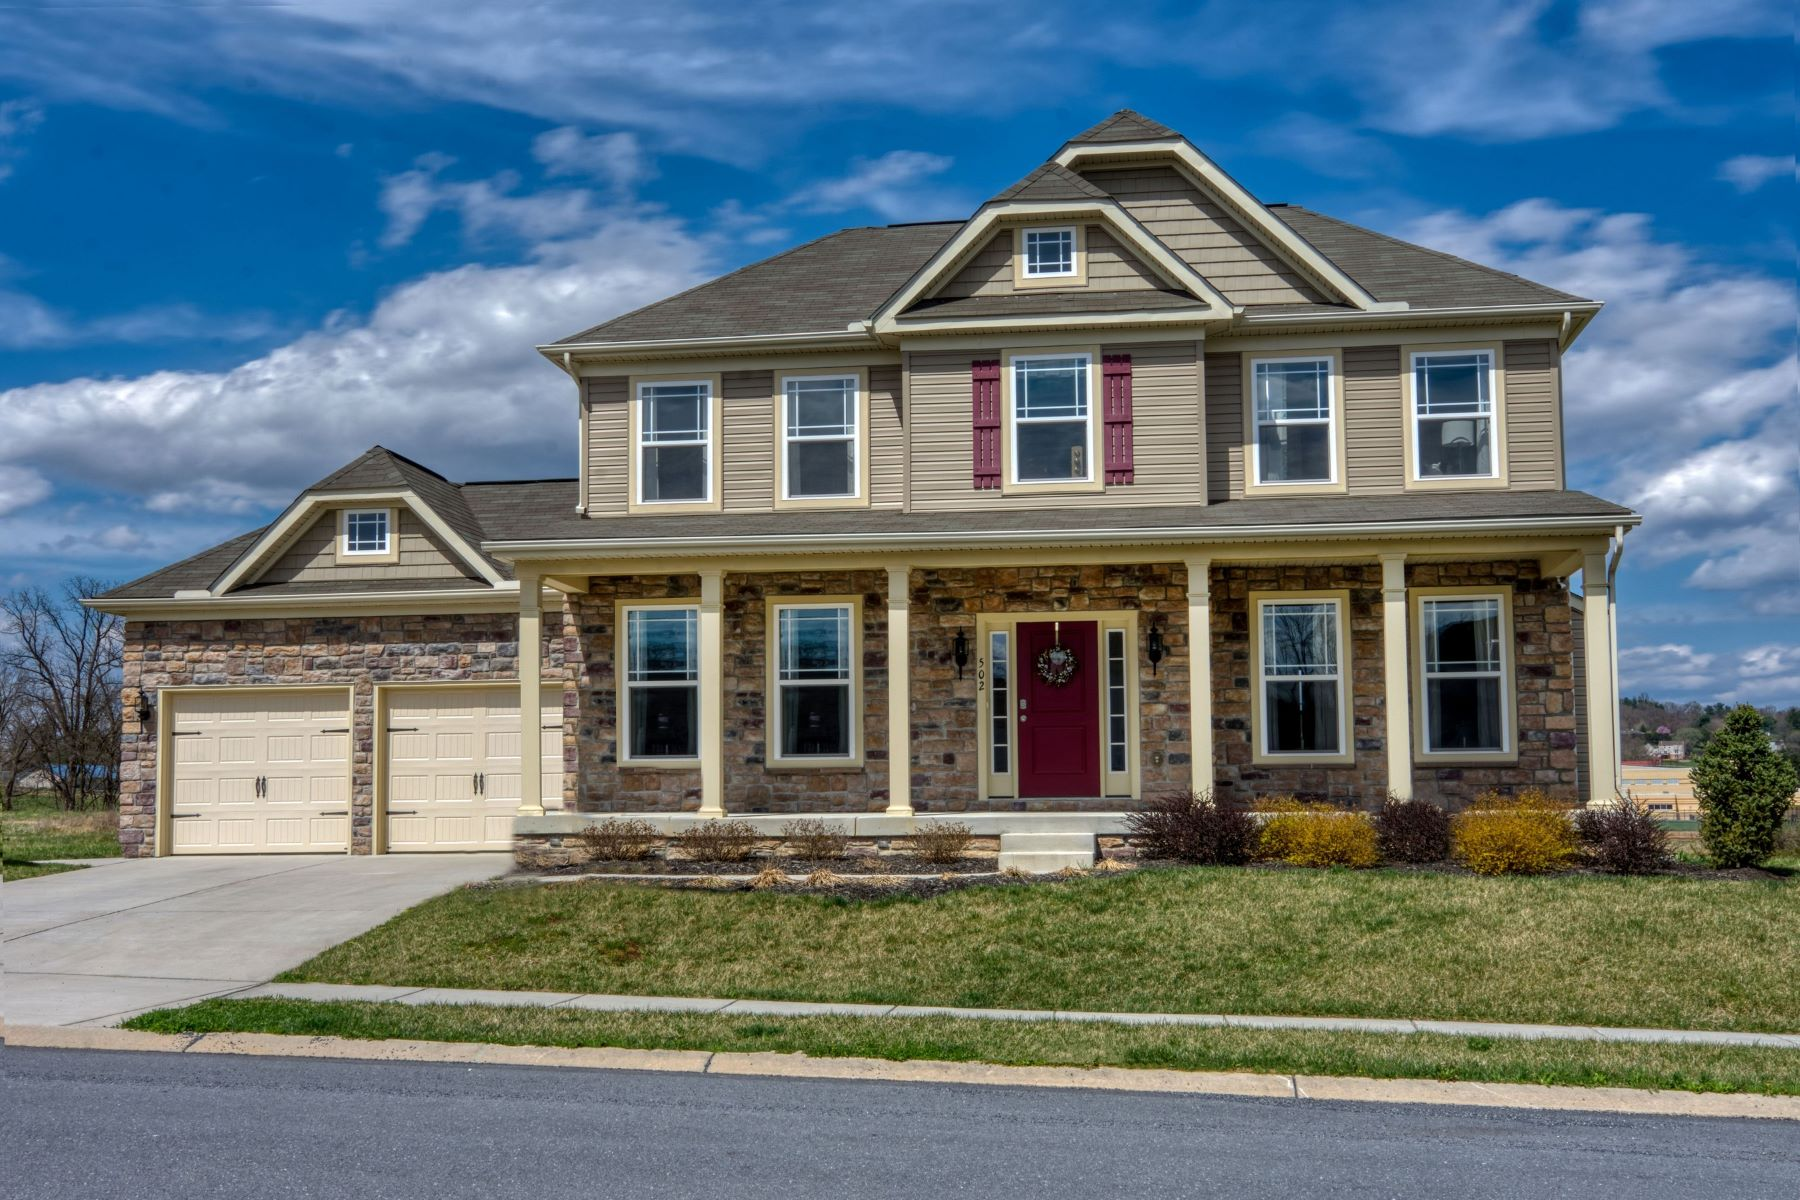 Single Family Homes for Sale at Fawn Township Britol II New Construction 0-A Morris Road, Fawn Grove, Pennsylvania 17321 United States